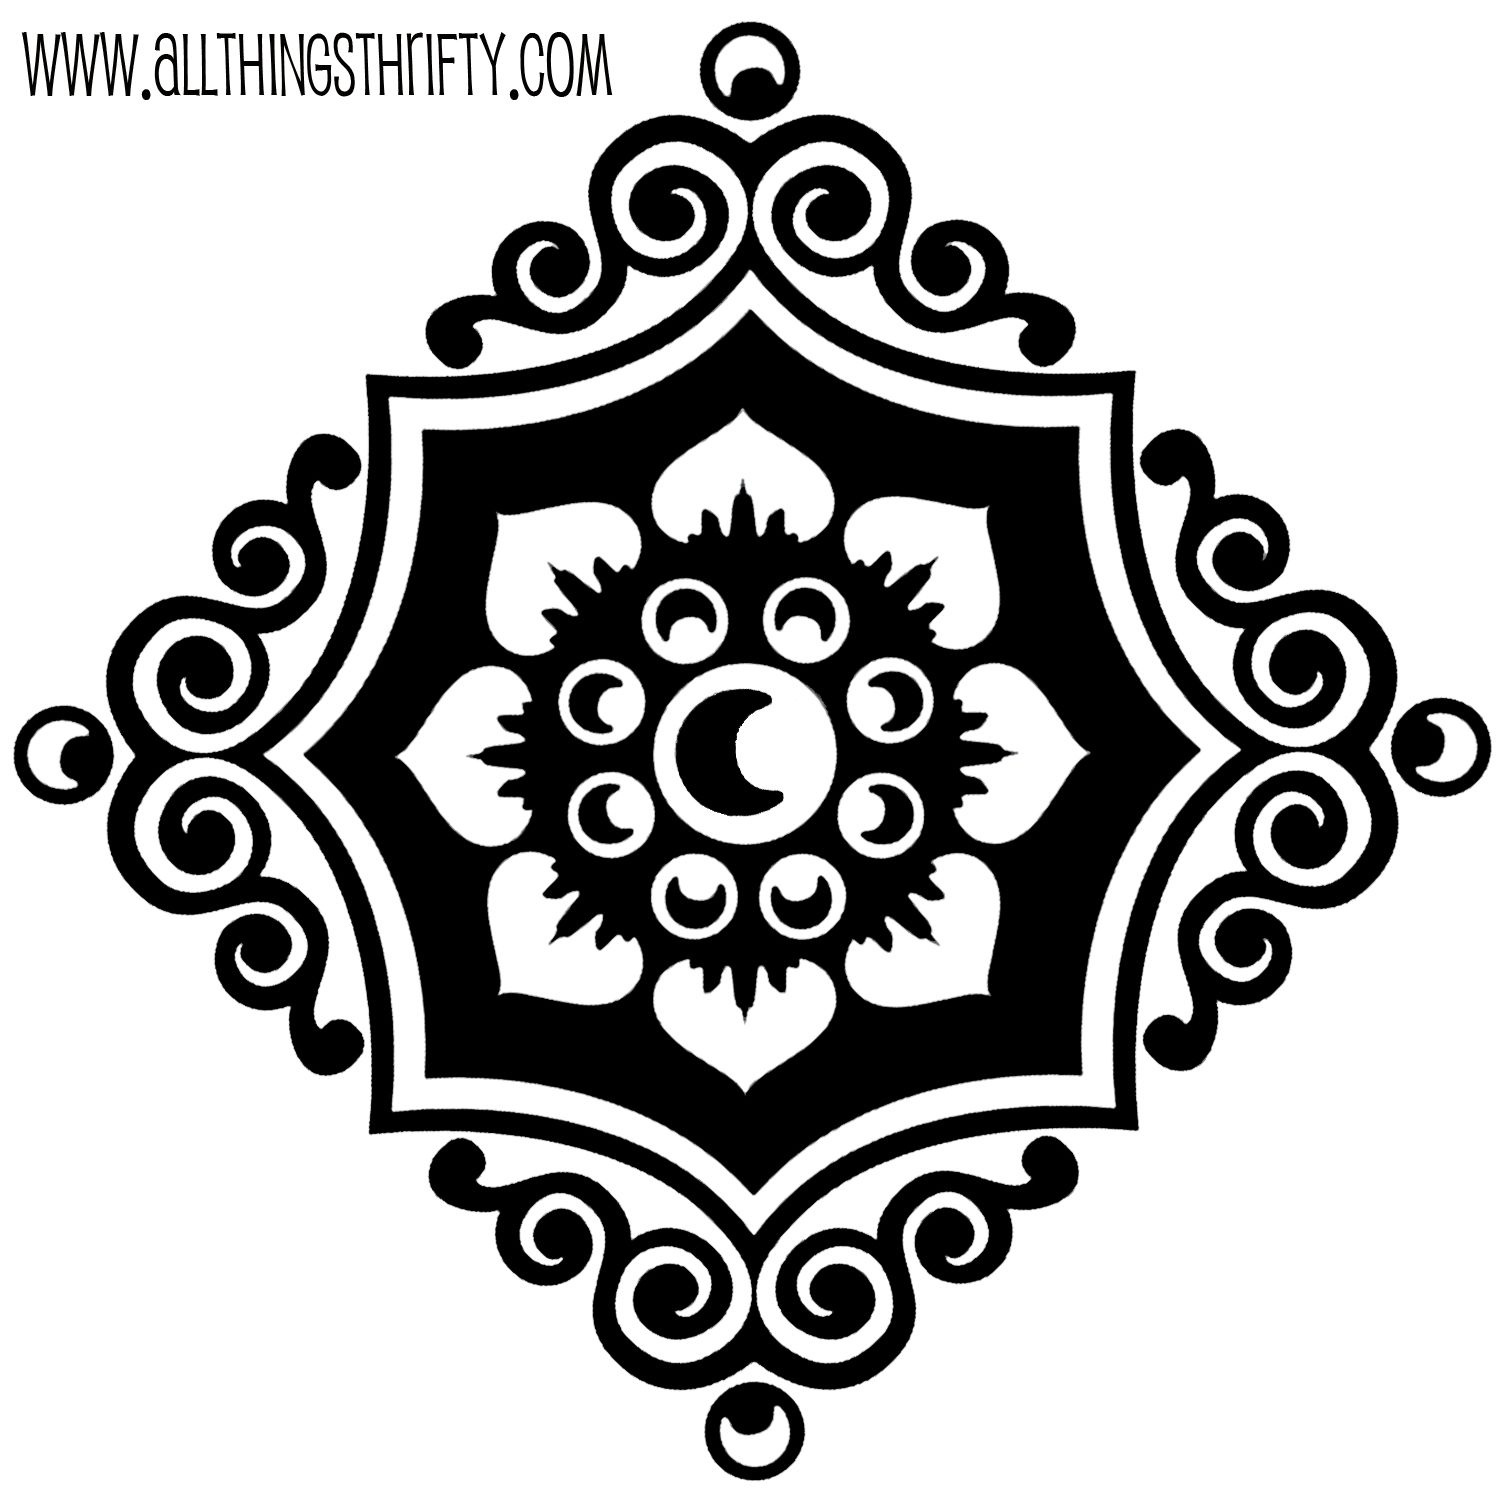 Stencil Patterns Just For You! | Craft Ideas To Keep Us Creative - Free Printable Stencil Designs